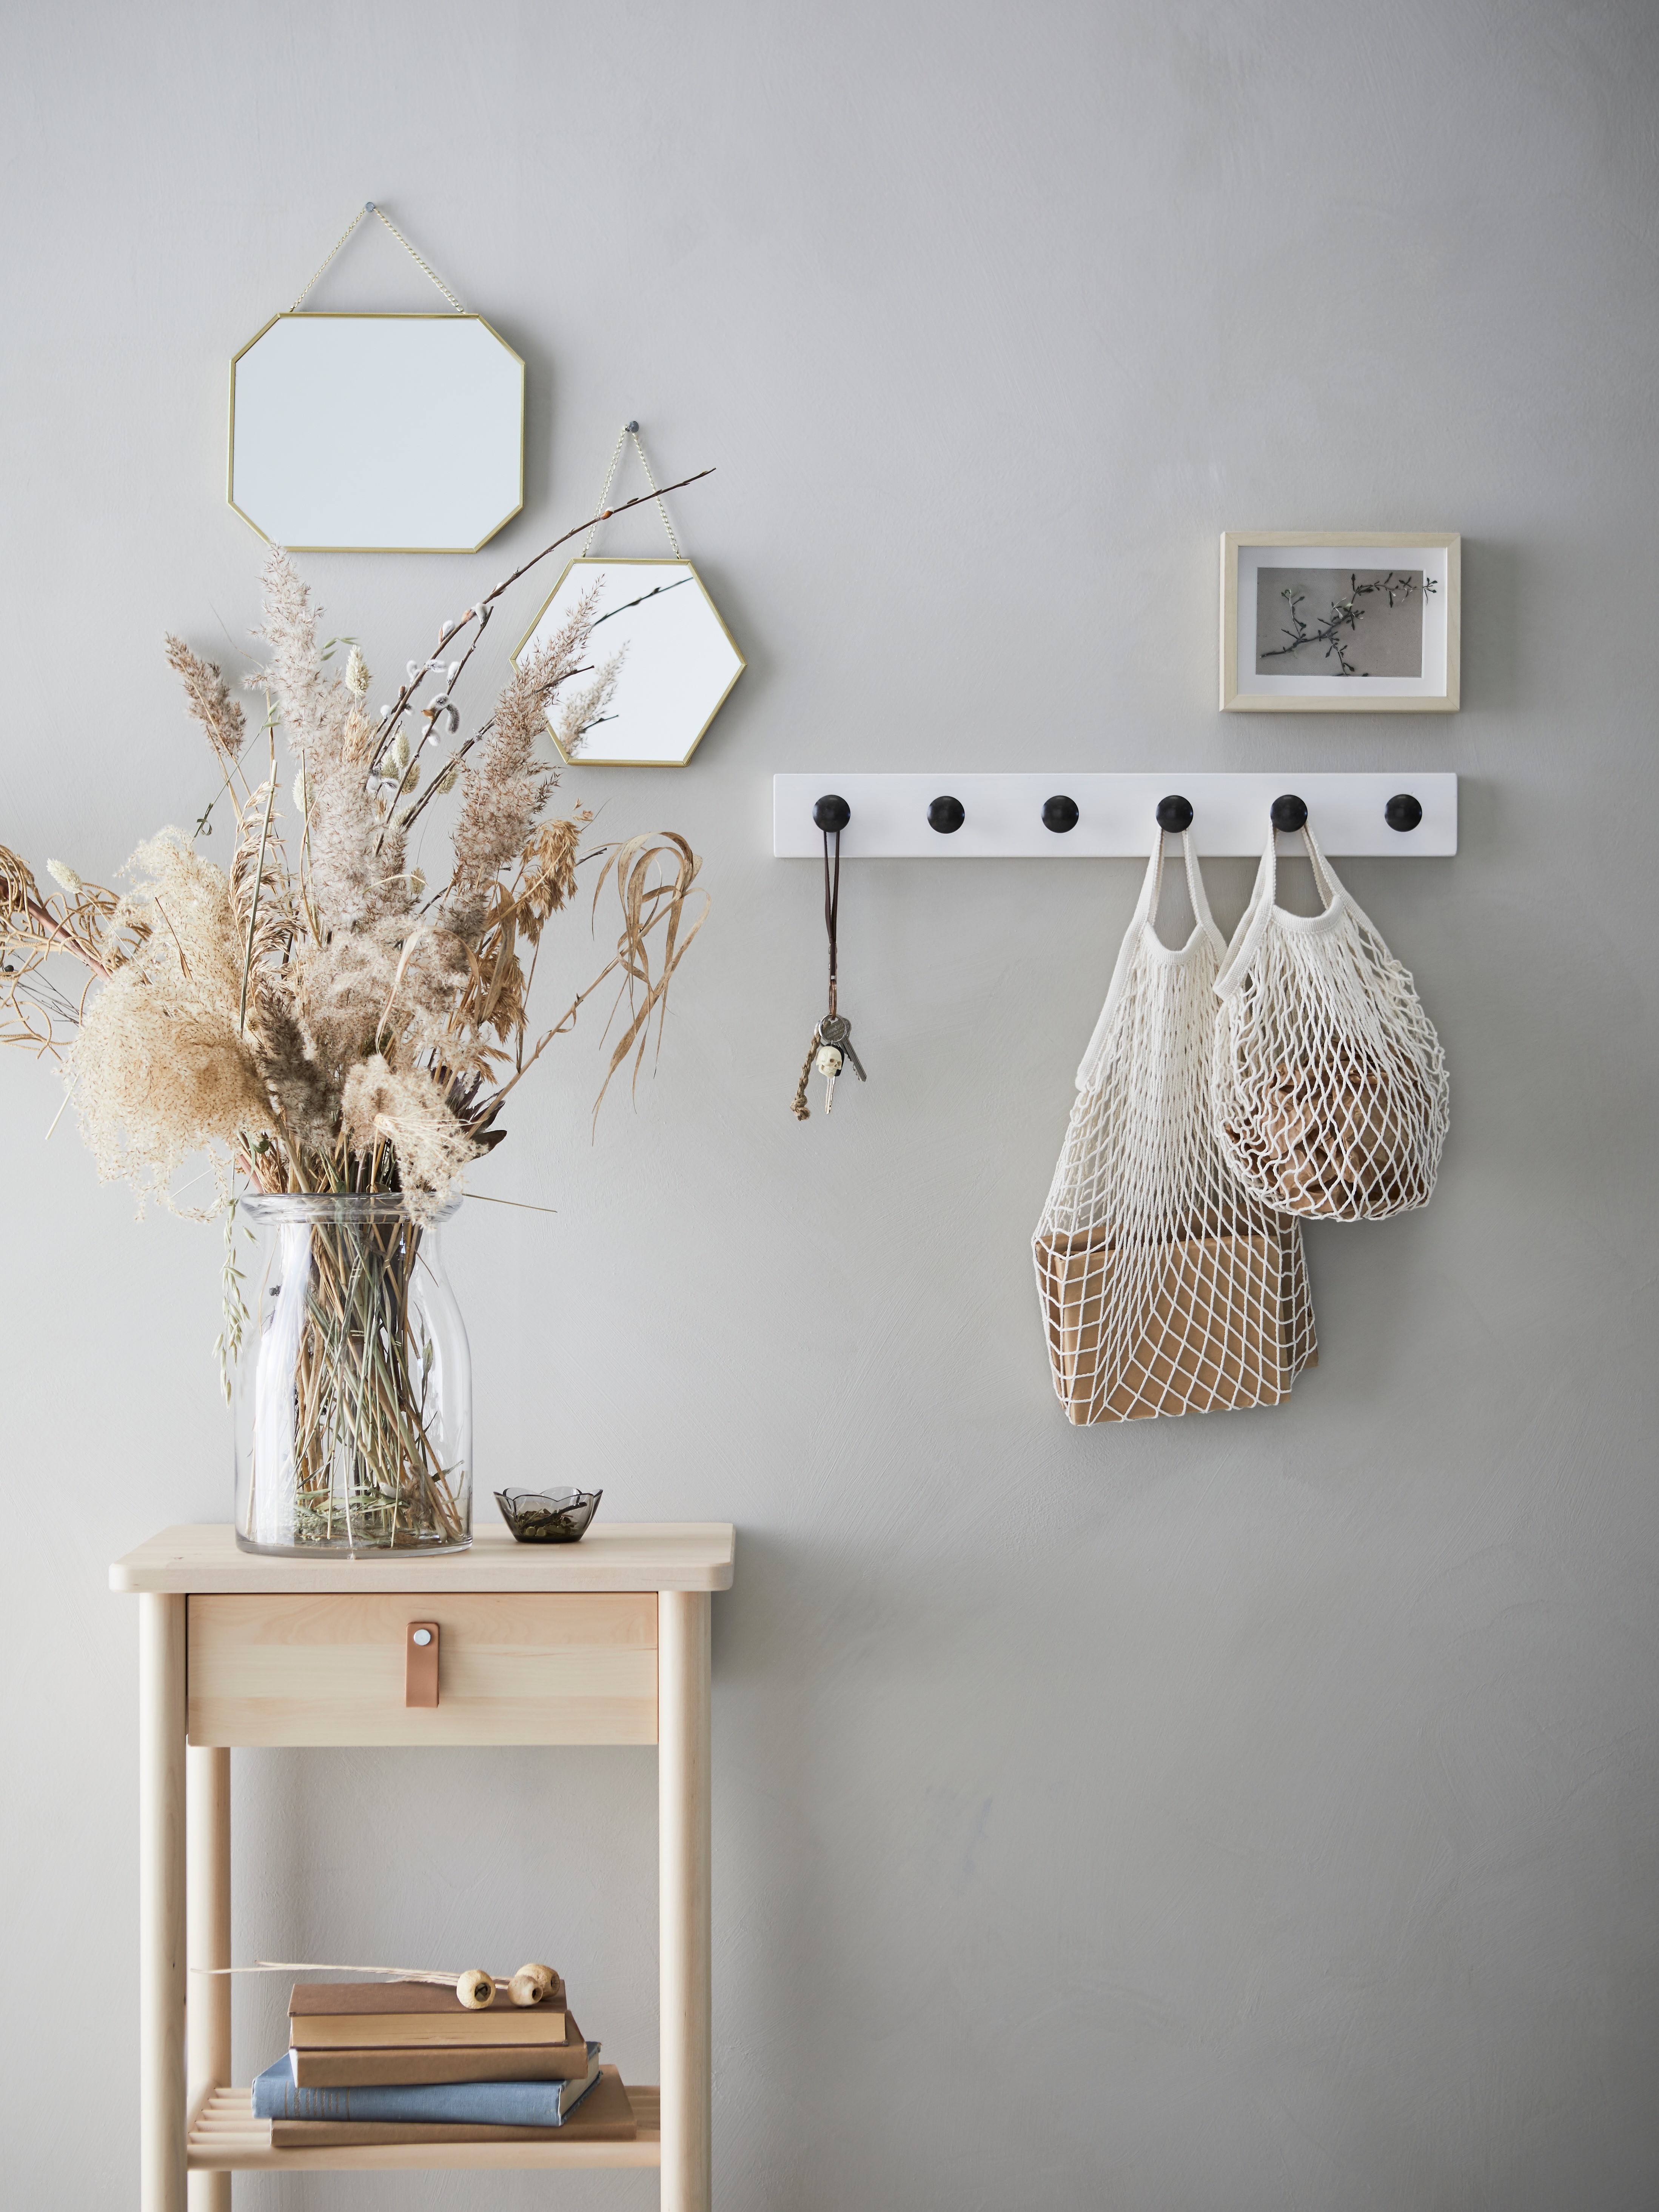 A wall with LASSBYN mirrors, a picture frame and net bags on a hook rail behind side table with vase of dried flowers.